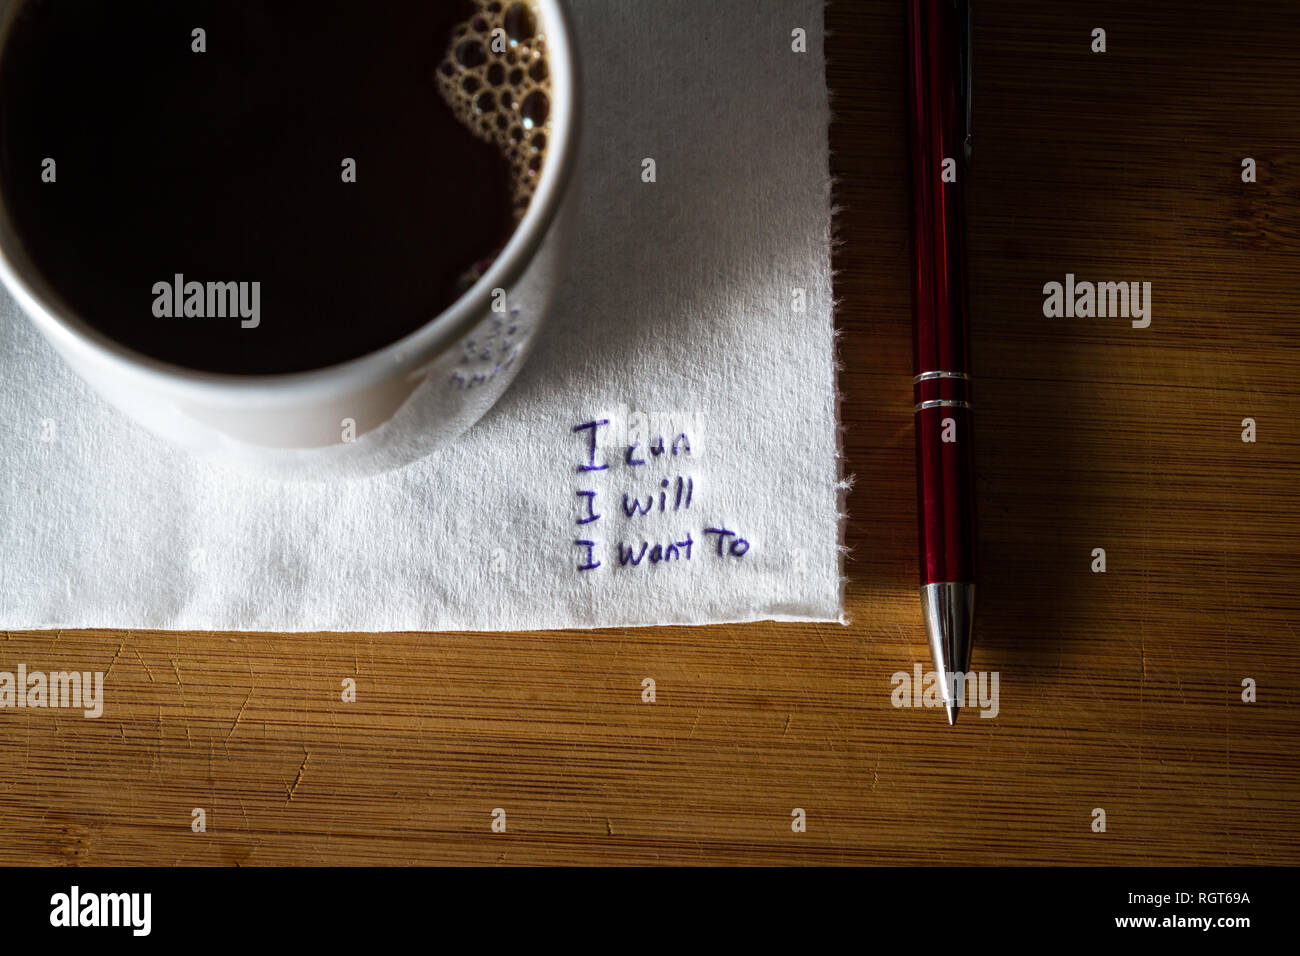 hand written note on a coffee stained napkin with an empowering message, I can I will I want to. - Stock Image